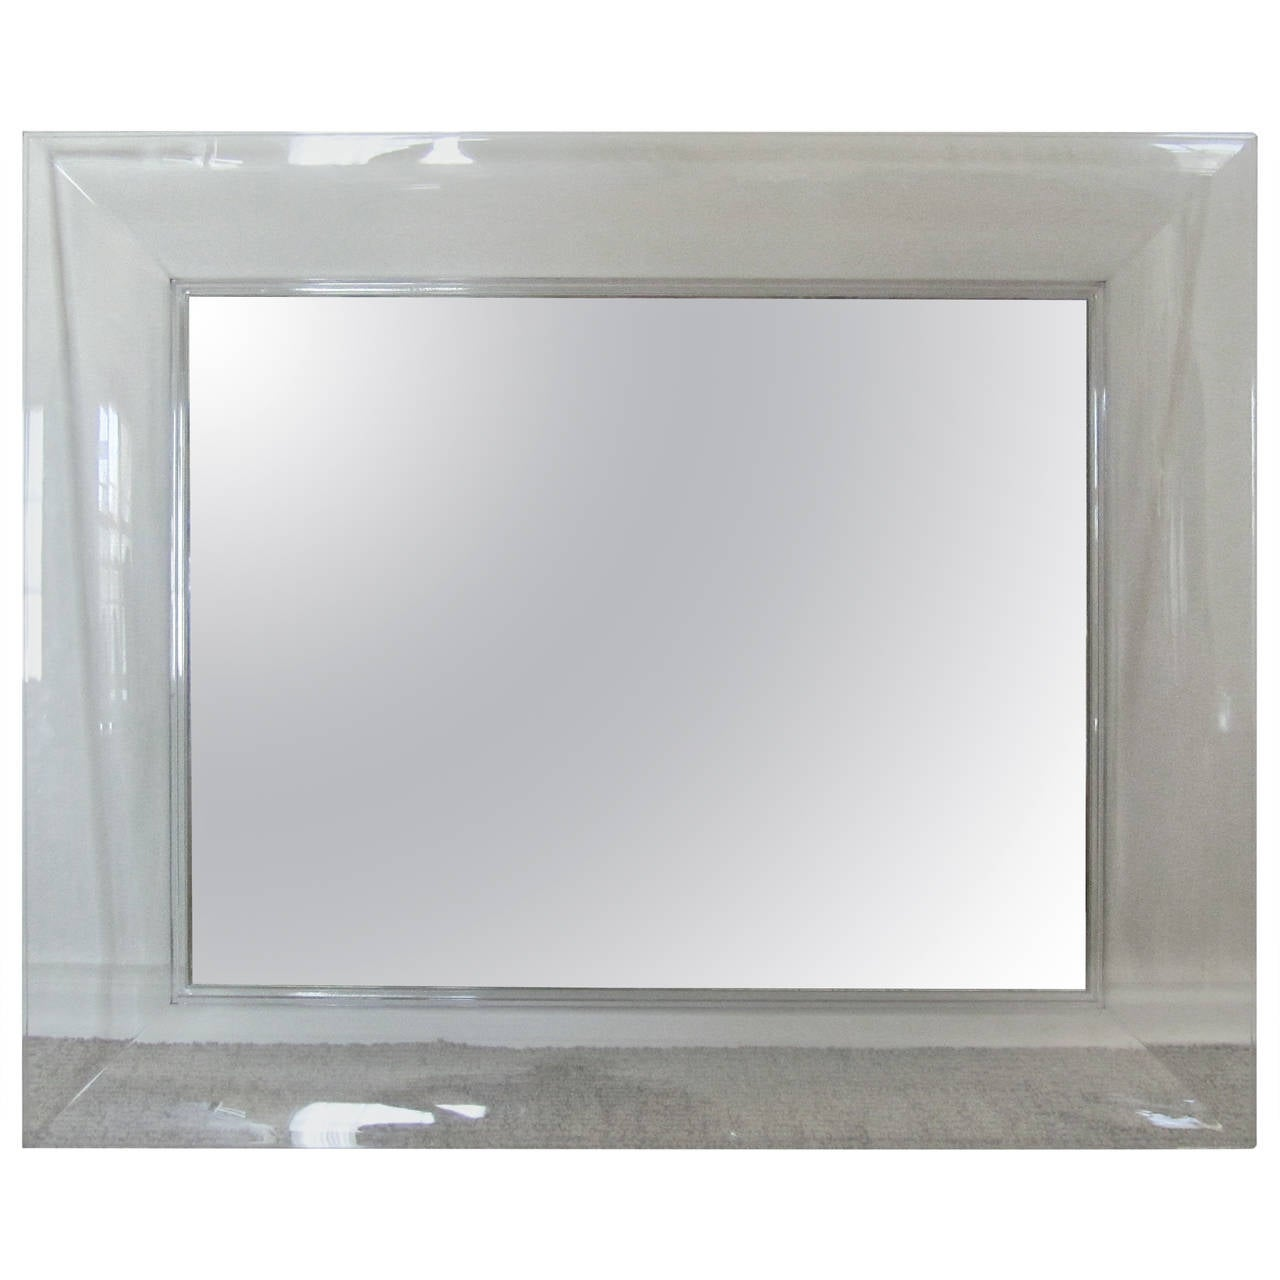 Kartell francois ghost large rectangular mirror by for Philippe starck miroir